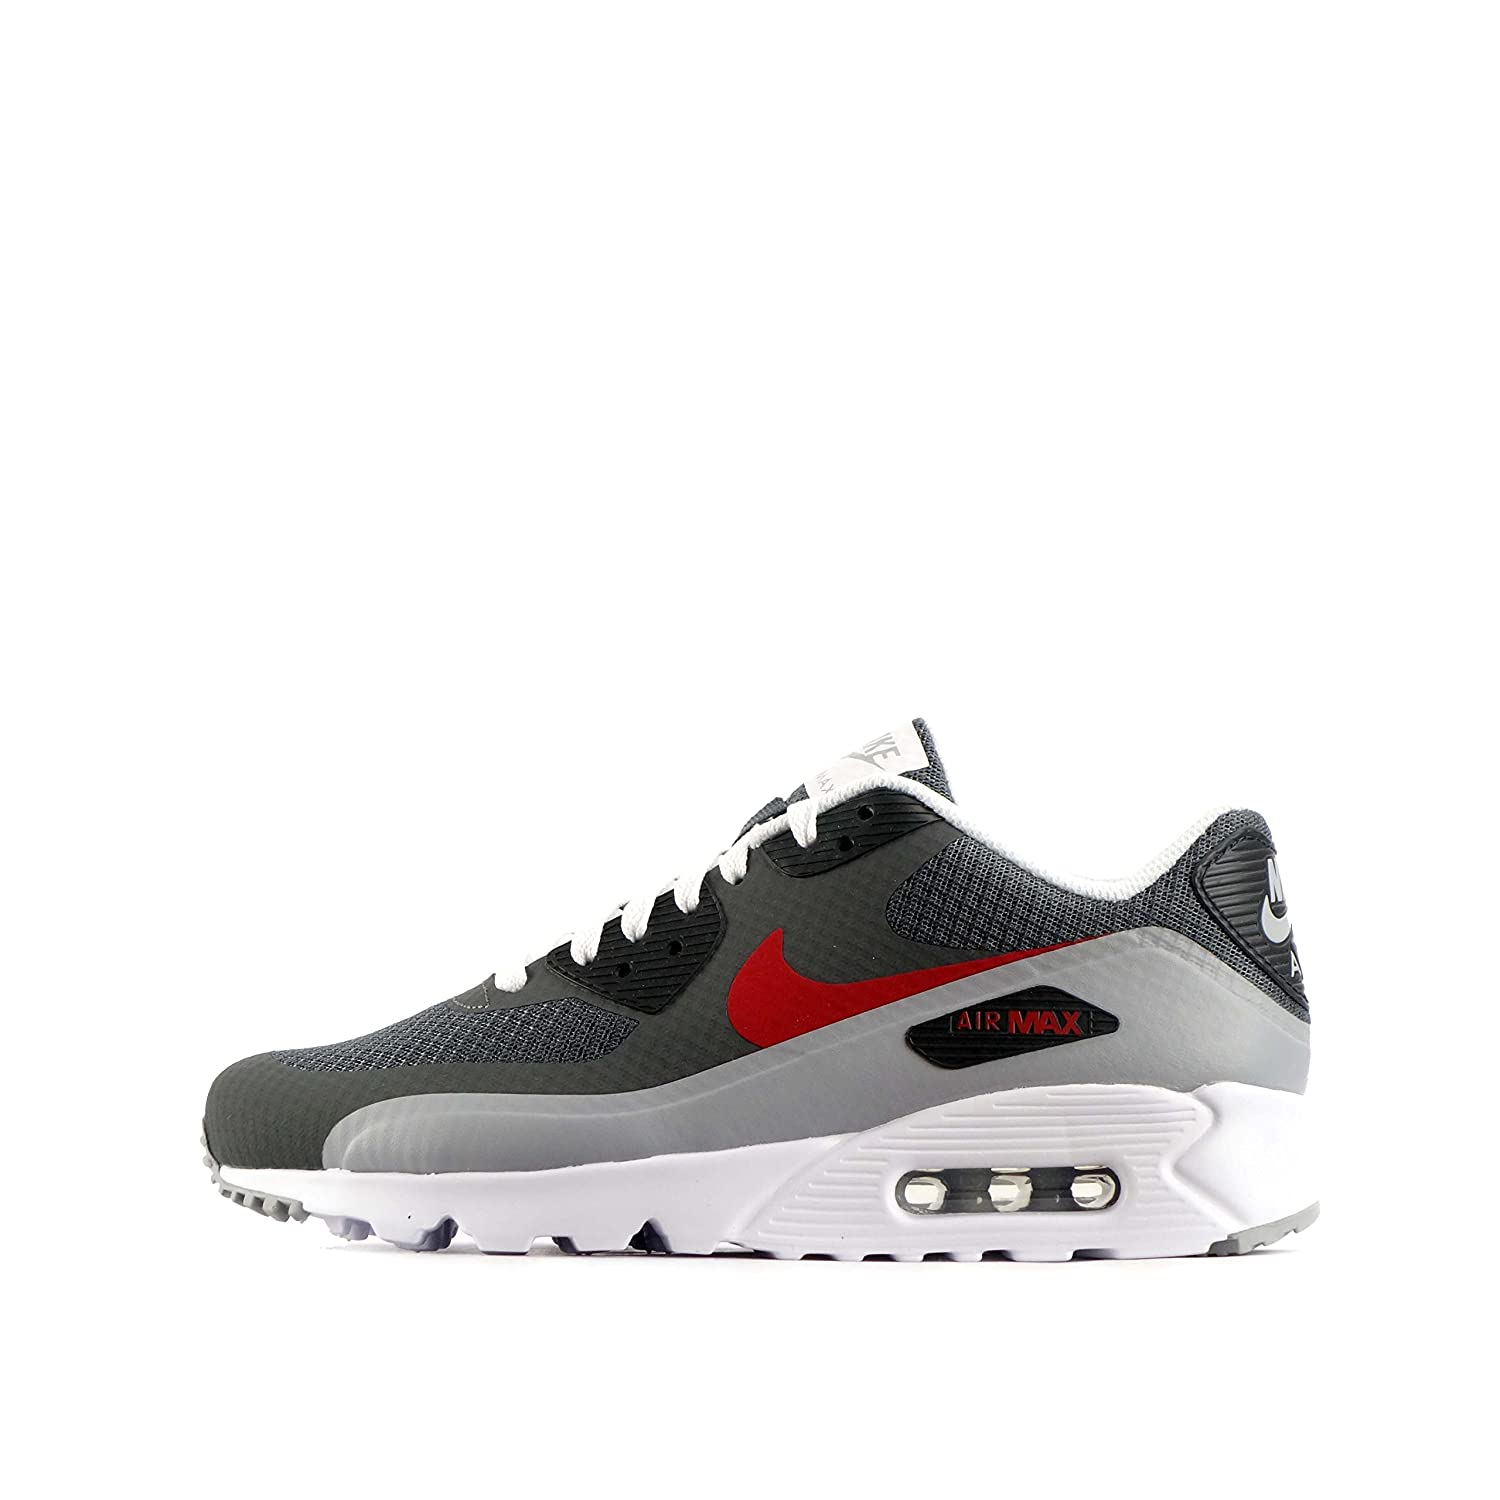 a88efc2603f54 chic nike air max 90 ultra essential mens trainers 819474 sneakers shoes ( dark grey gym